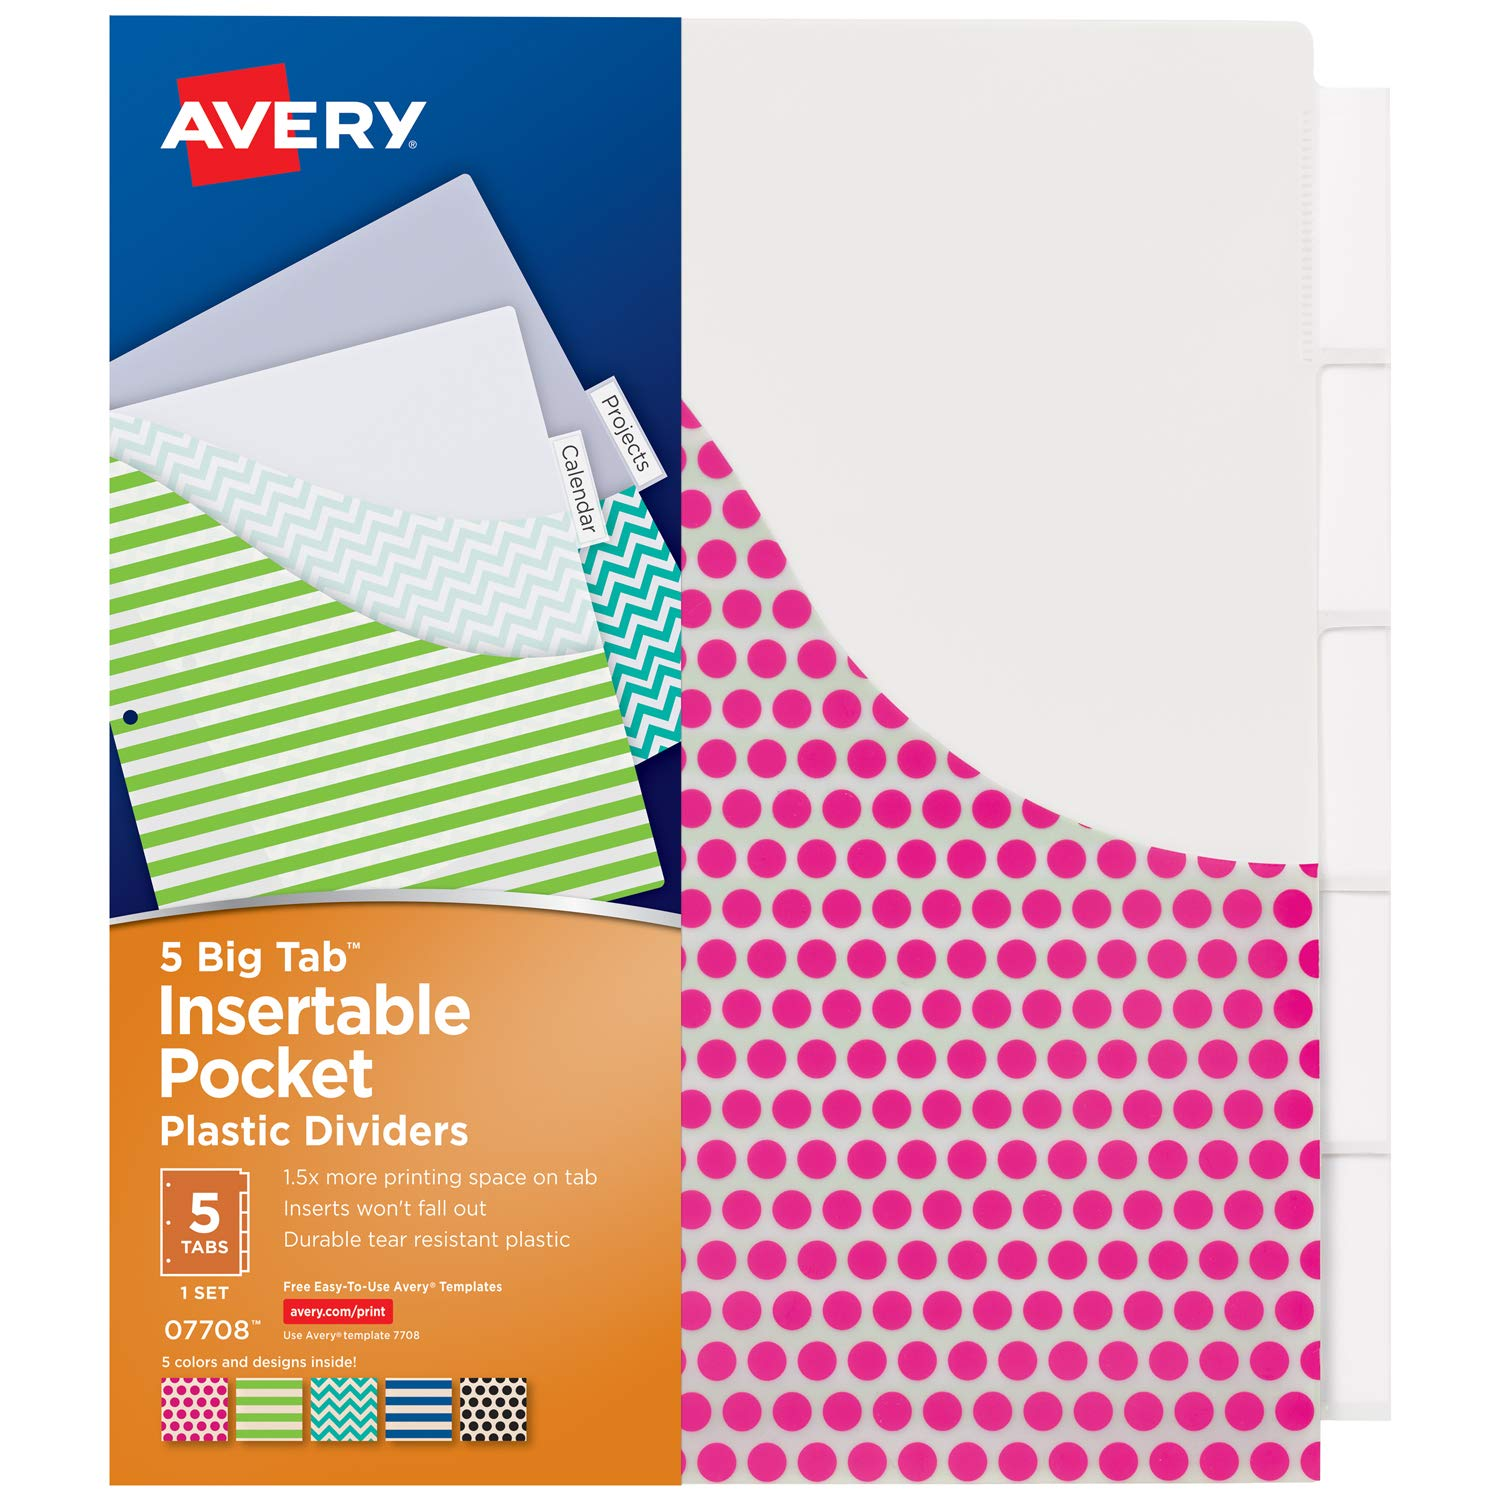 graphic about Free Printable Divider Tabs for Binders identify Avery 5-Tab Plastic Binder Dividers with Pockets, Insertable Crystal clear Substantial Tabs, Different Models, 1 Fixed (7708)